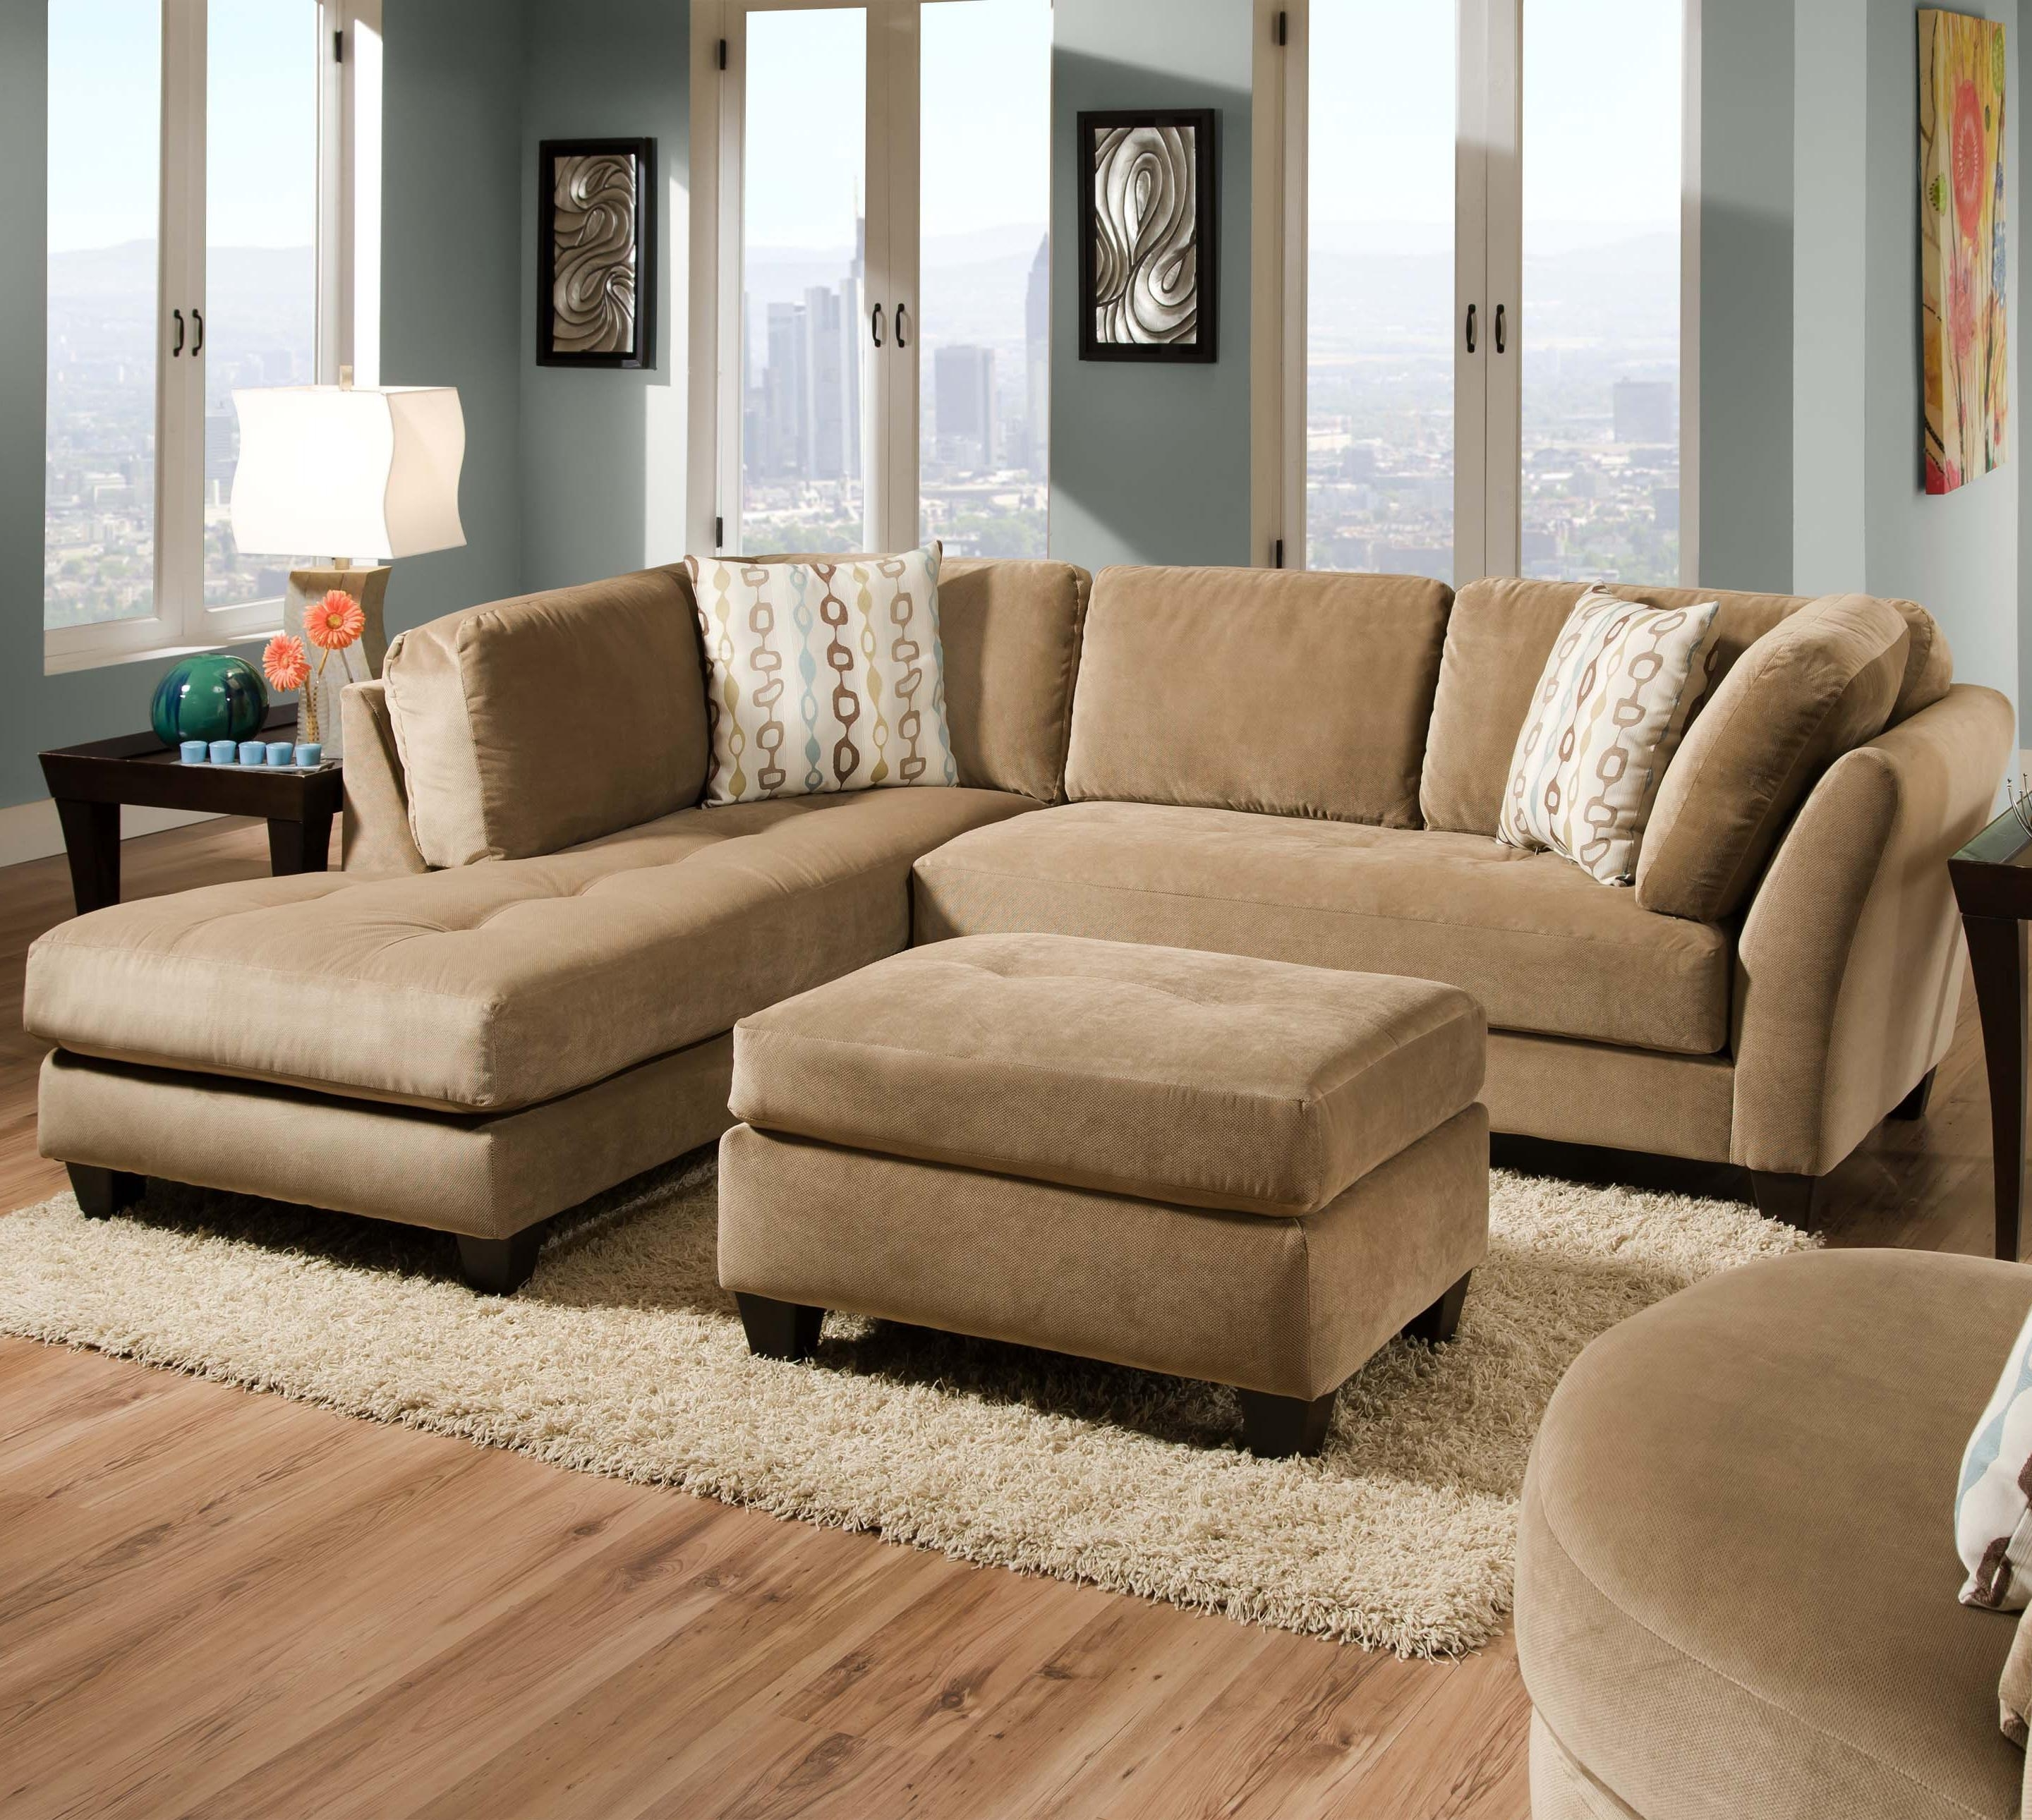 35B Slugger Mocha 2 Piece Sectionalcorinthian – Great American Within Favorite Memphis Sectional Sofas (Gallery 19 of 20)